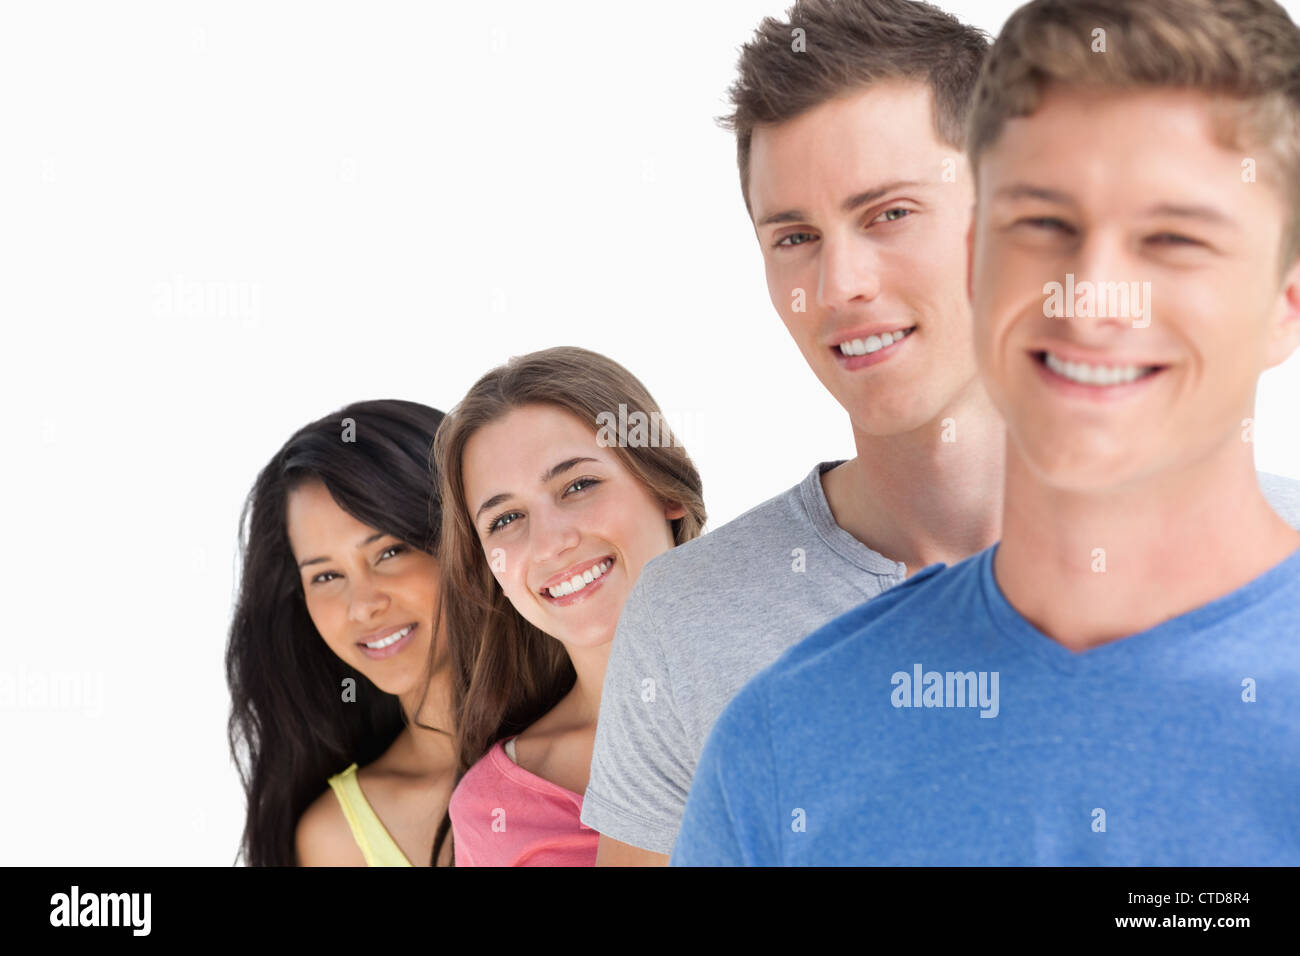 Four people standing in a line with each person angled out a little more - Stock Image